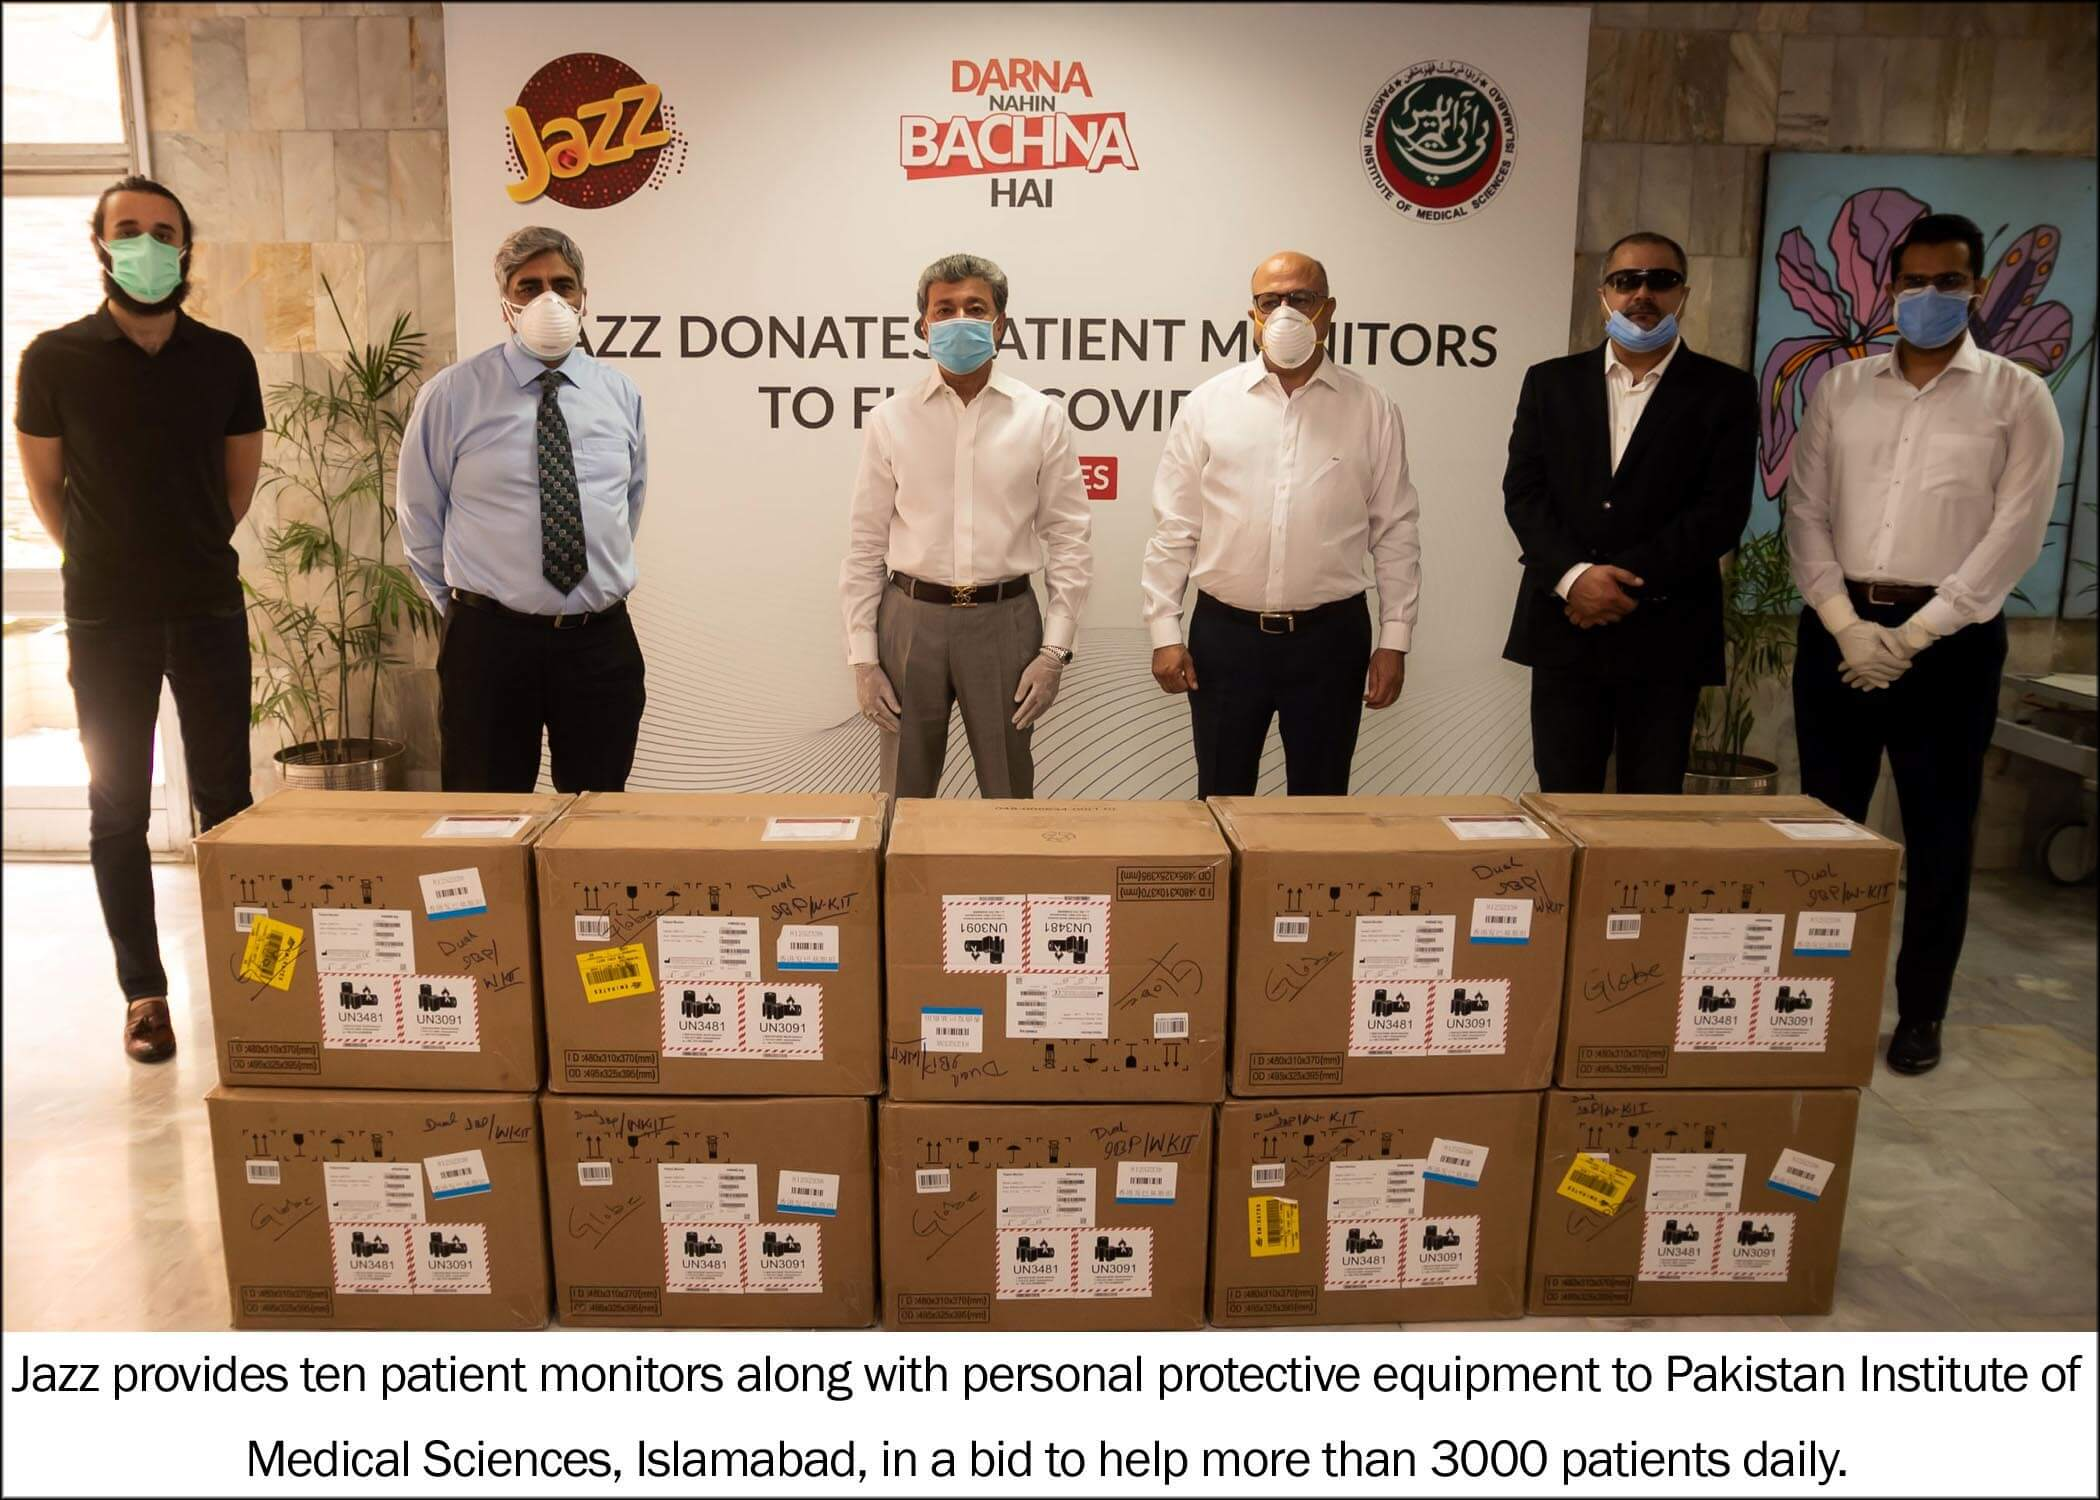 Jazz donates life-saving equipment in the fight against COVID-19